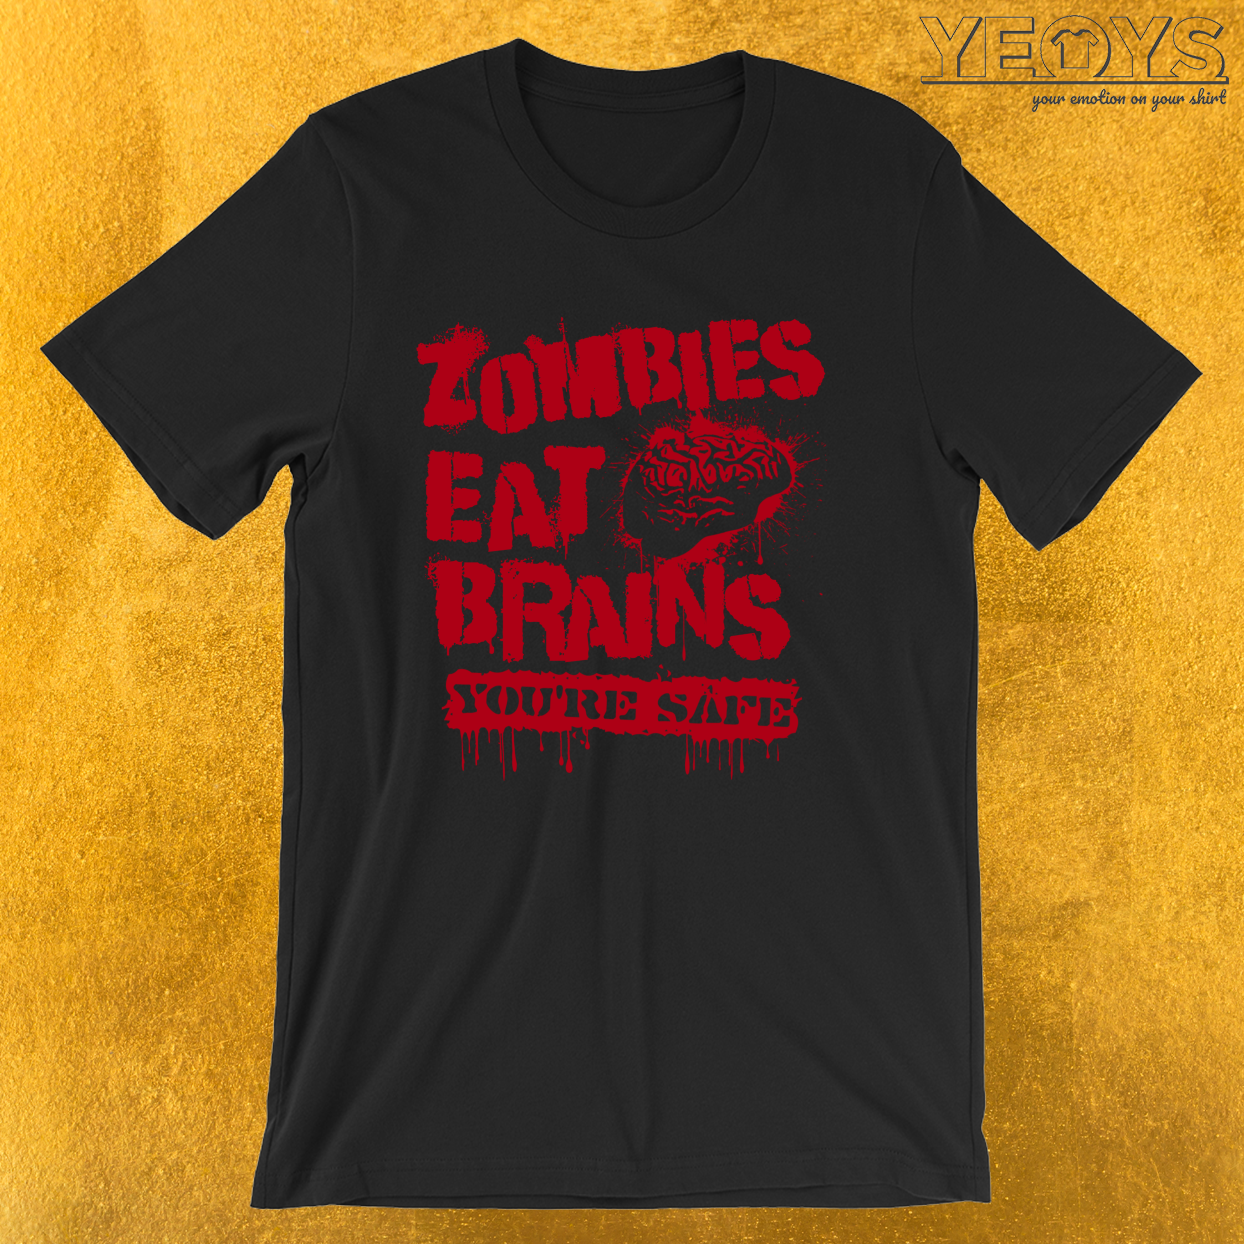 Zombies Eat Brains You're Safe – Zombie Creep Tee